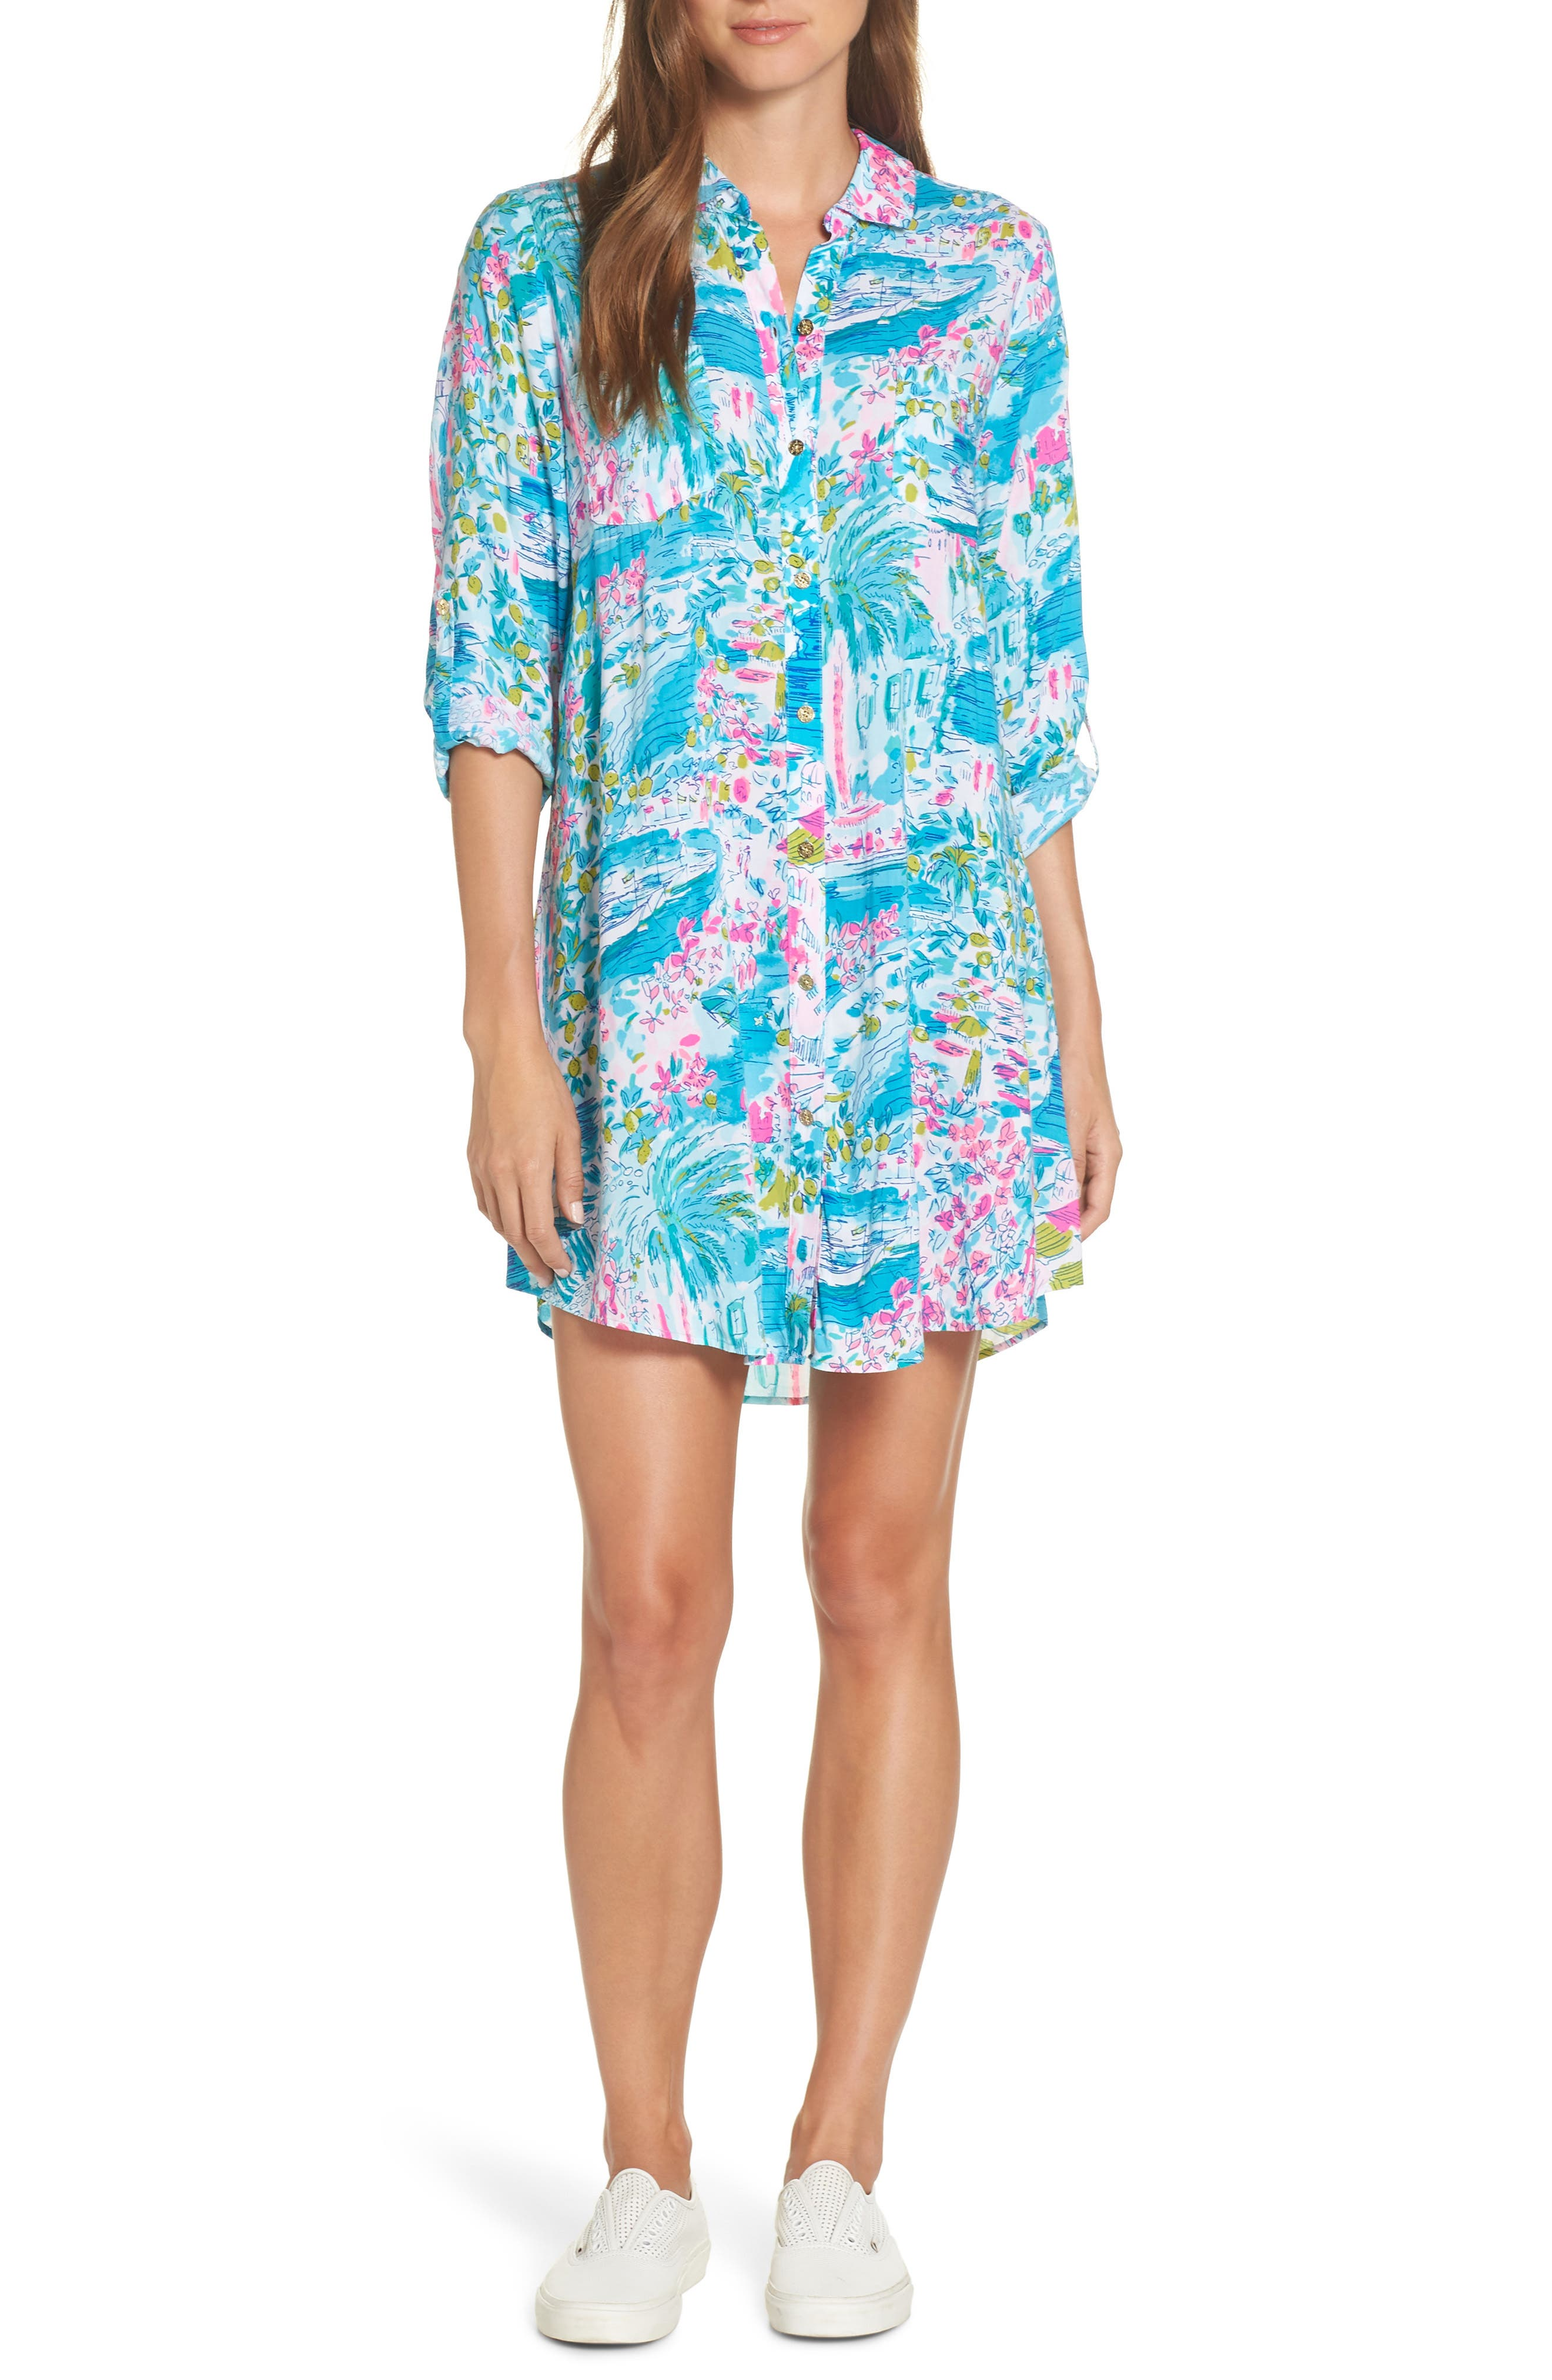 Natalie Shirtdress Cover Up by Lilly Pulitzer®